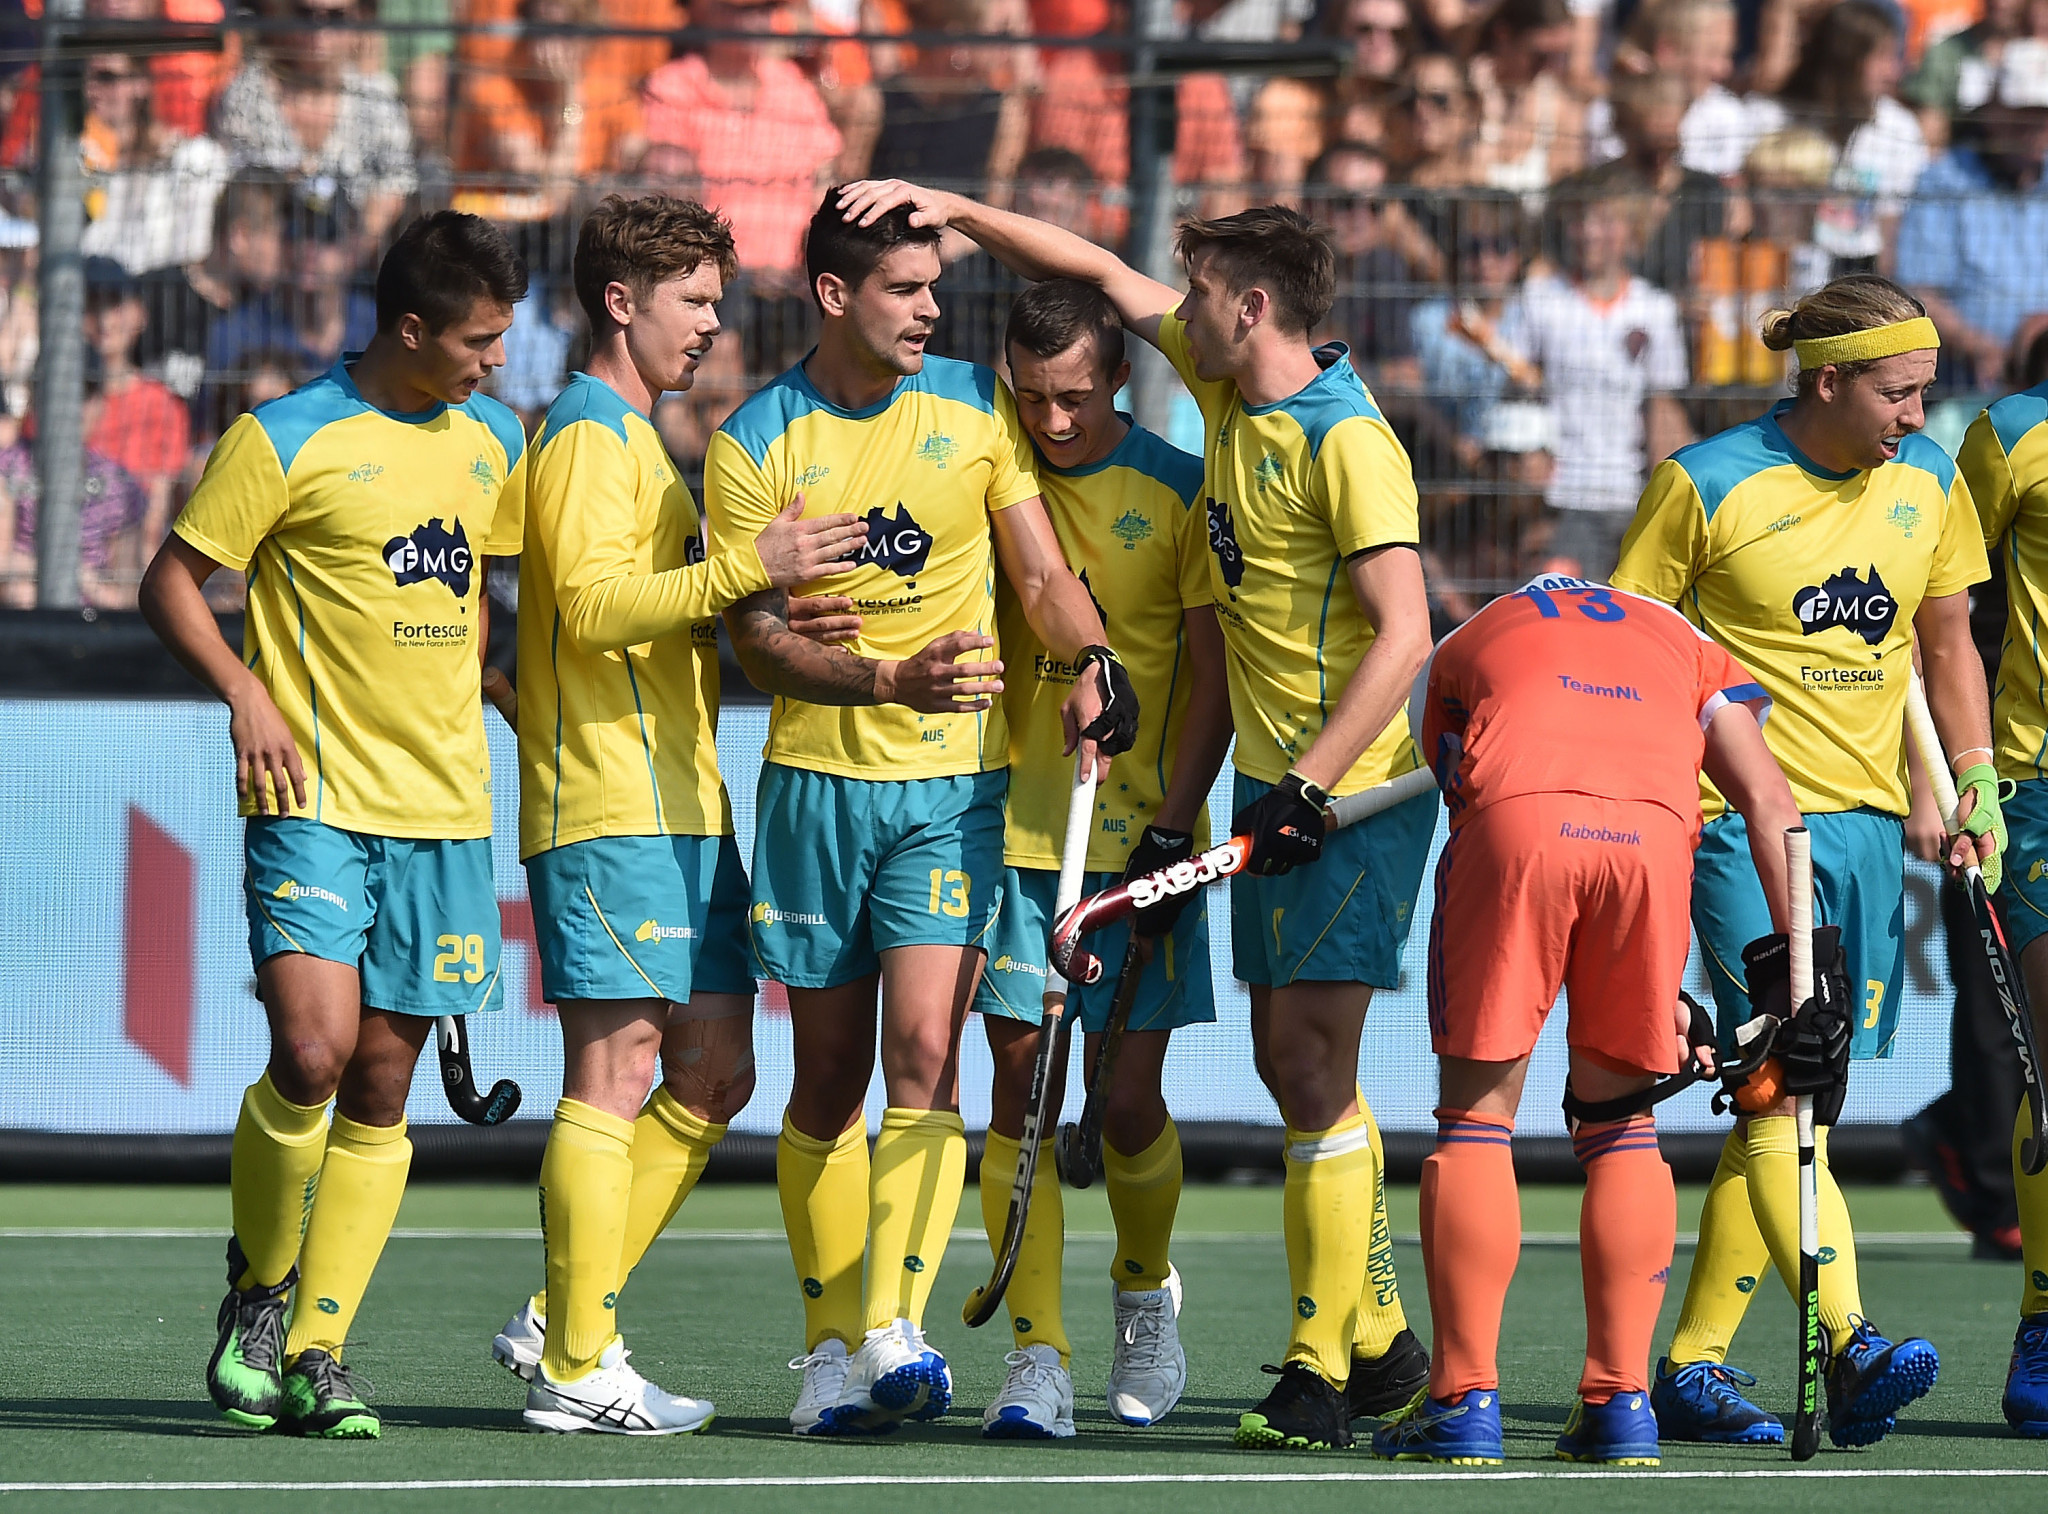 Australia put Dutch to the sword at Men's FIH Pro League after fire brigade called to water pitch